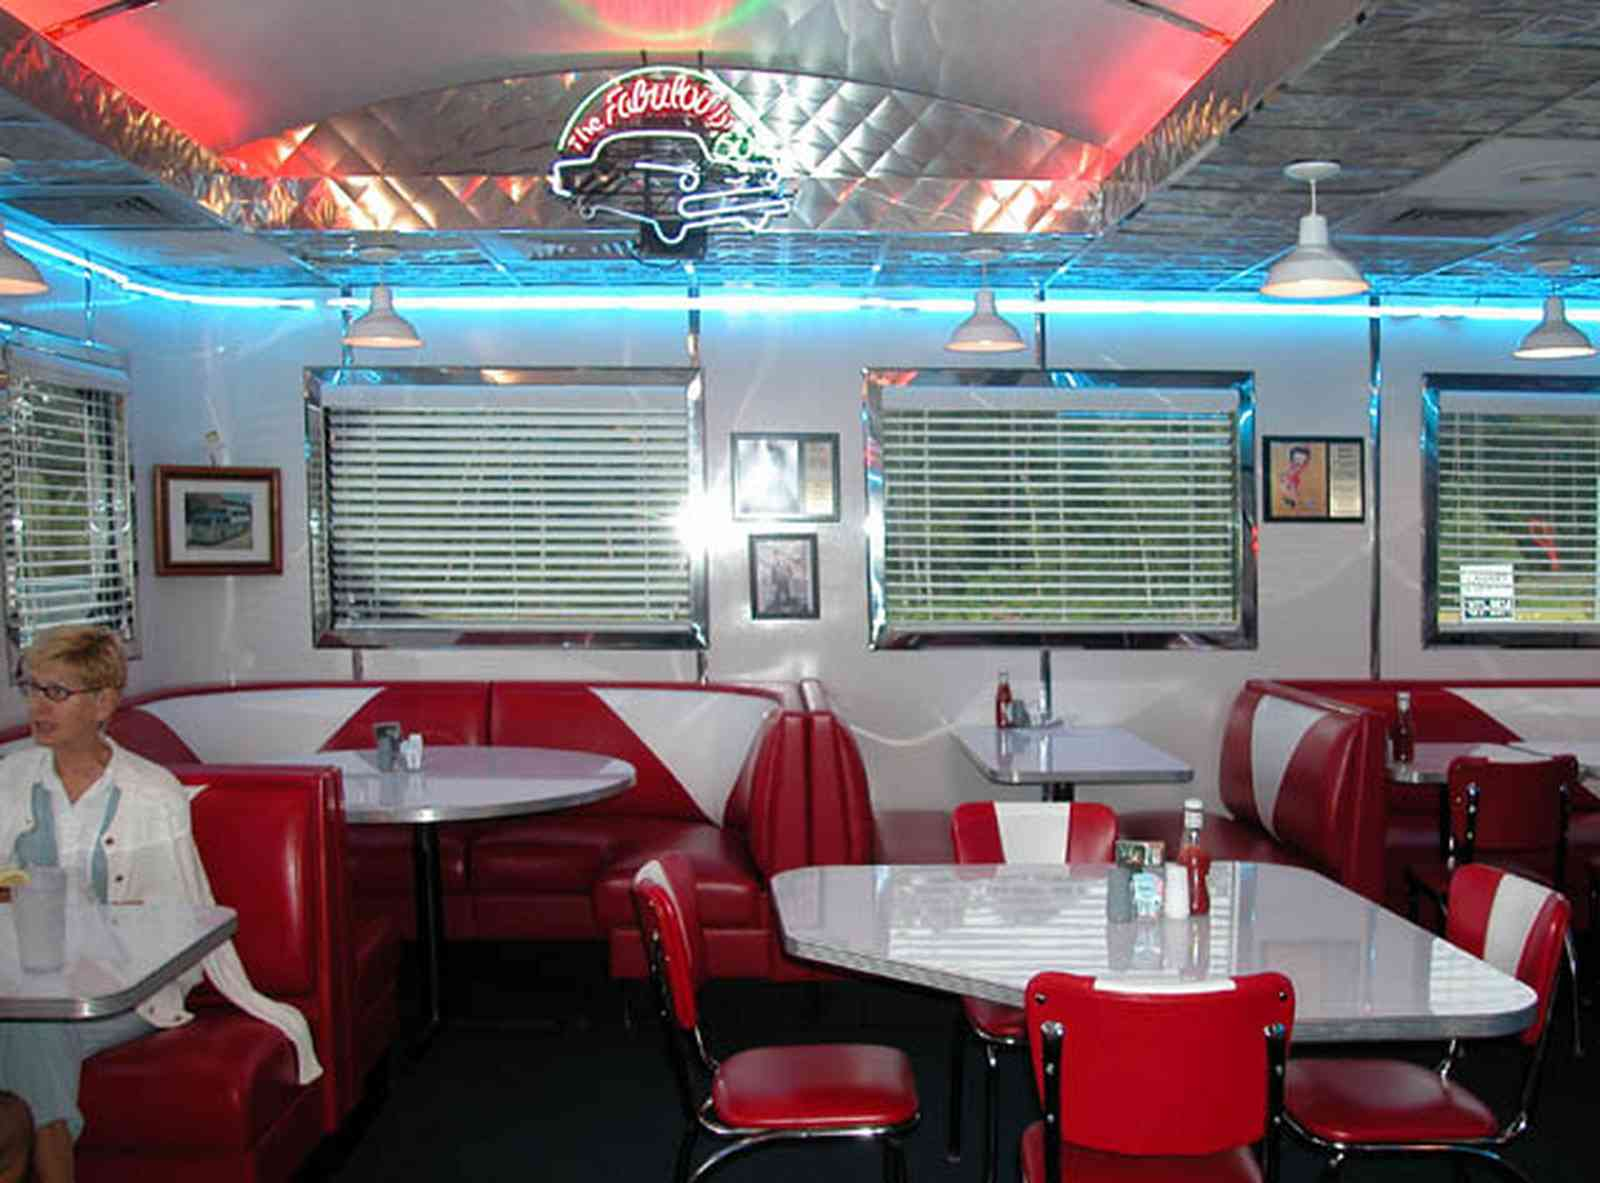 Pine-Forest:-50s-Diner_07.jpg:  booth, neon, stainless steel, diner, venitian blinds